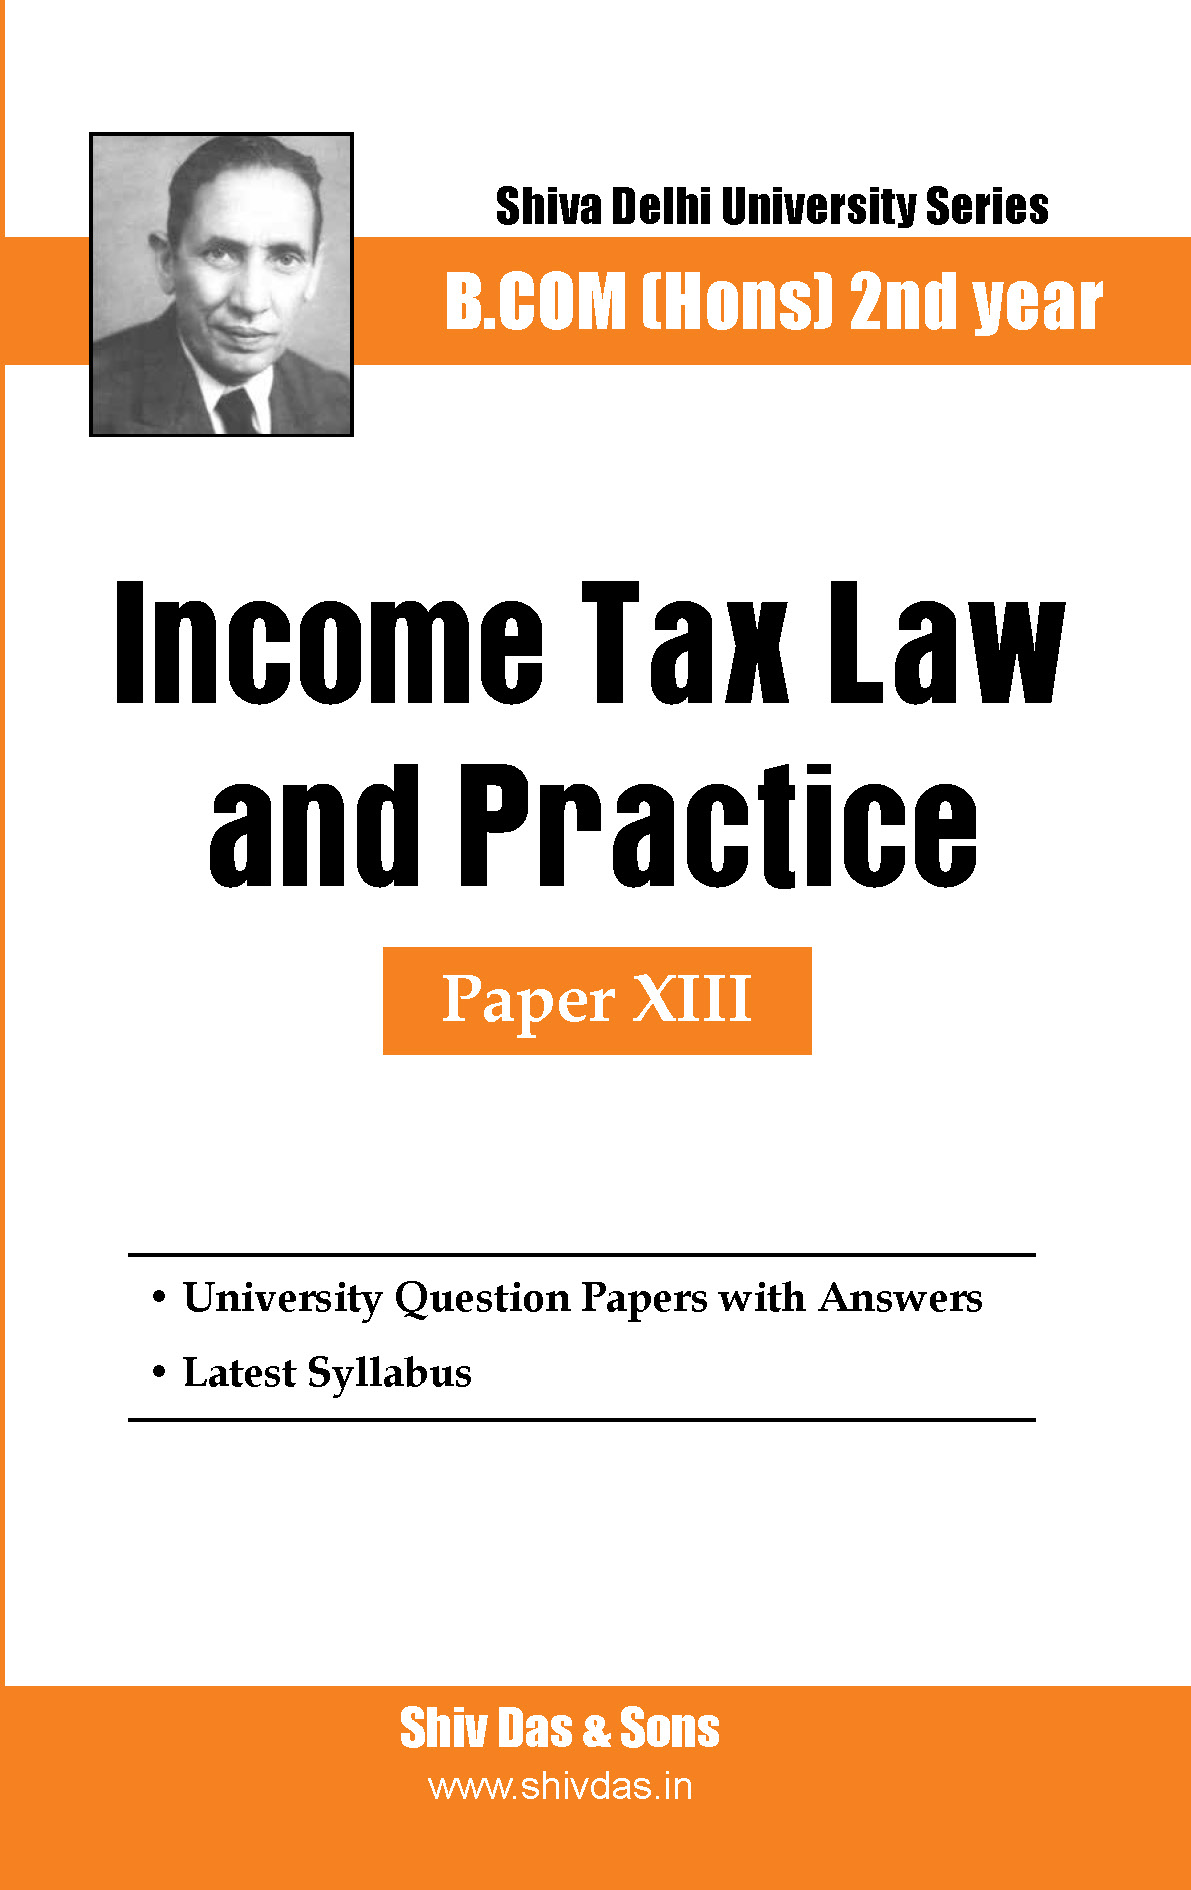 B.Com Hons-SOL/External-2nd Year-Income Tax Law & Practice-Shiv Das-Delhi University Series